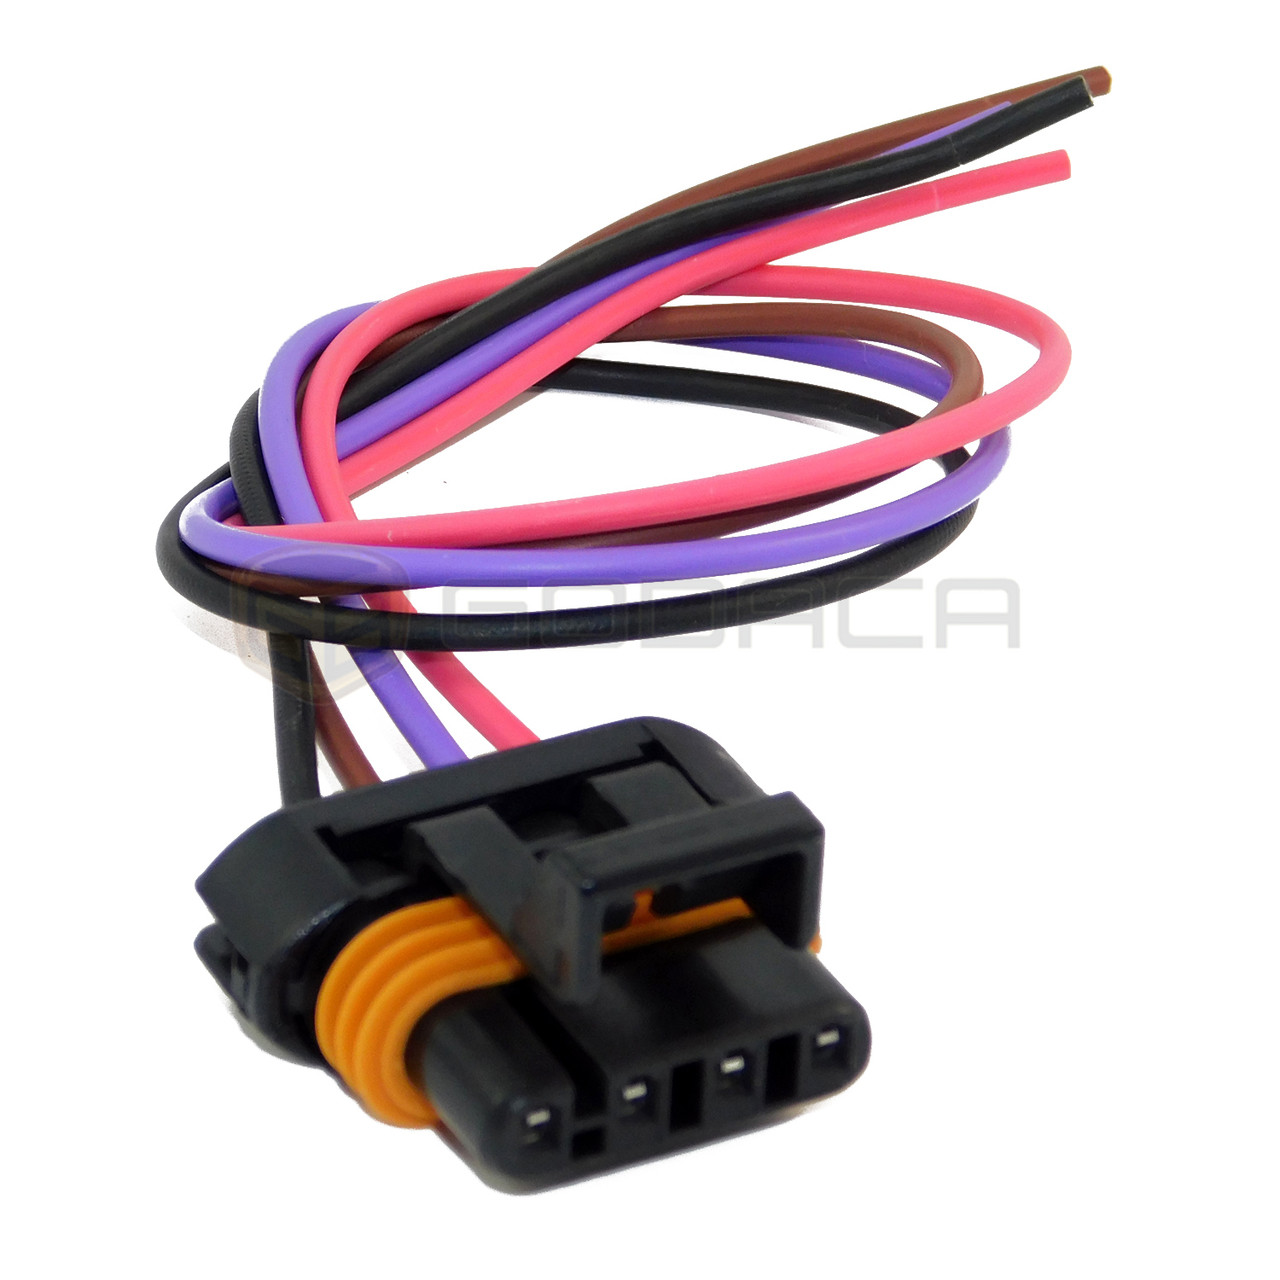 1 x ls1 ls6 ignition coil wiring harness pigtail connector gm camaro coil wire harness on  [ 1280 x 1280 Pixel ]